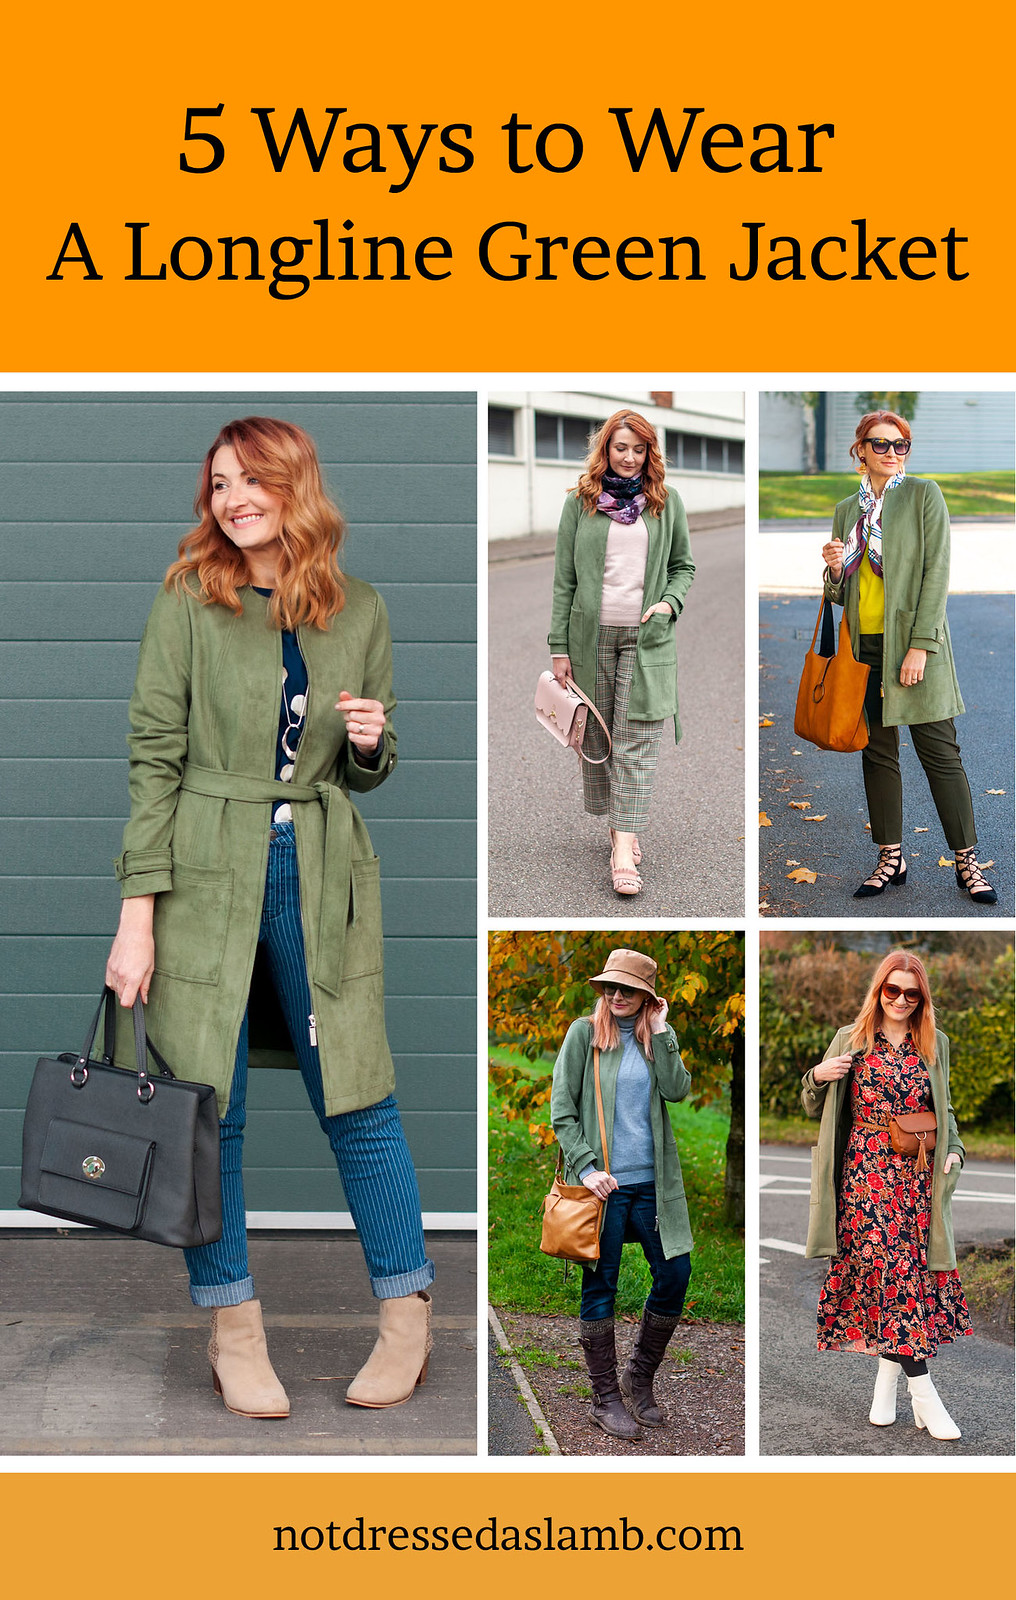 5 Ways to Wear an Olive Green Longline Jacket | Not Dressed As Lamb, Over 40 Style